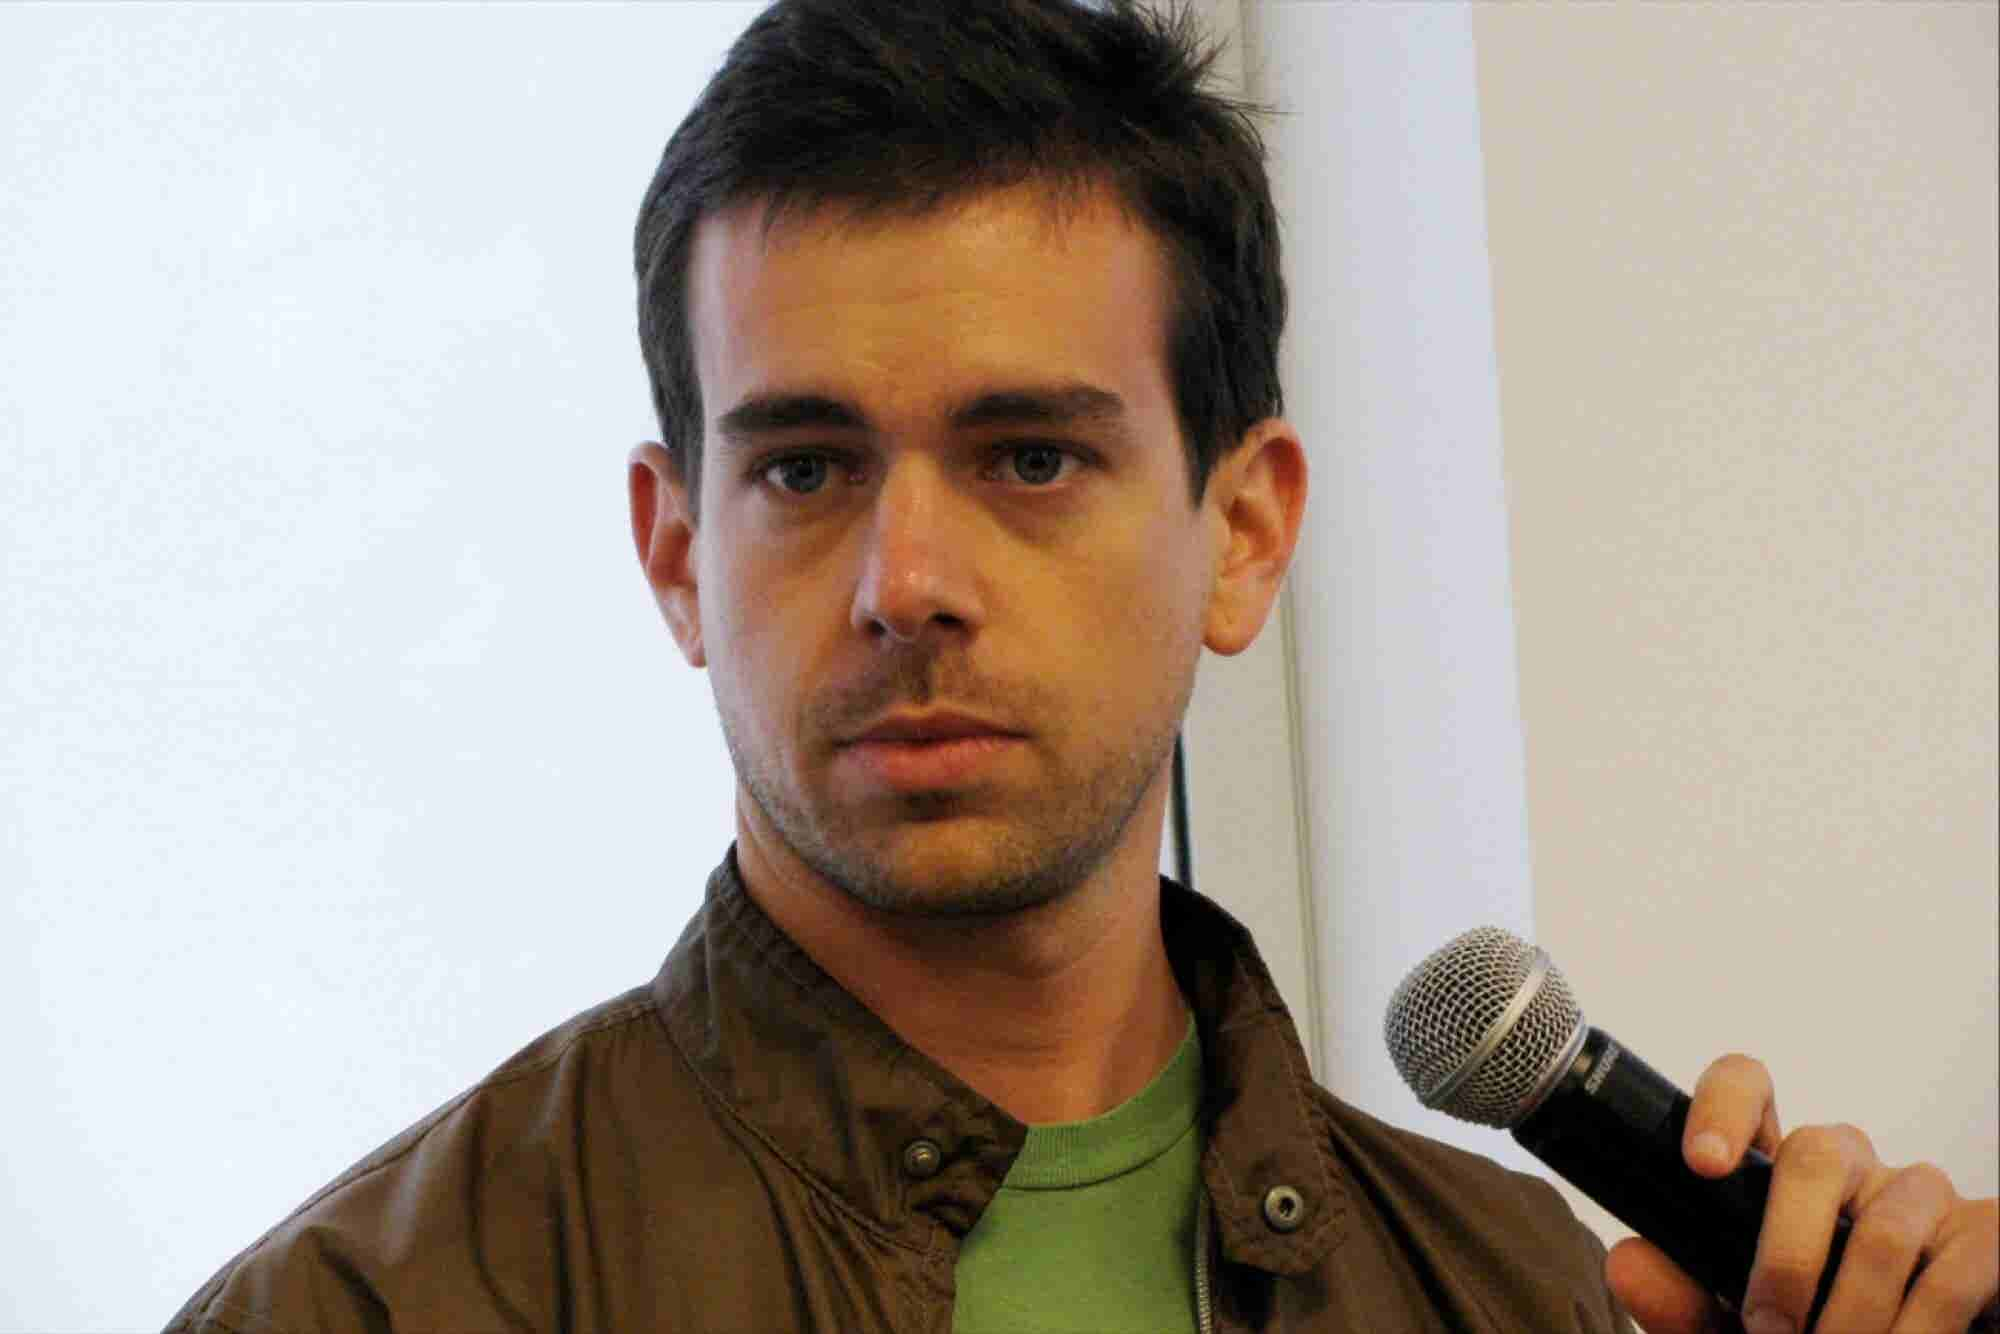 What Twitter CEO Jack Dorsey Achieved With His $197M Gift to Employees